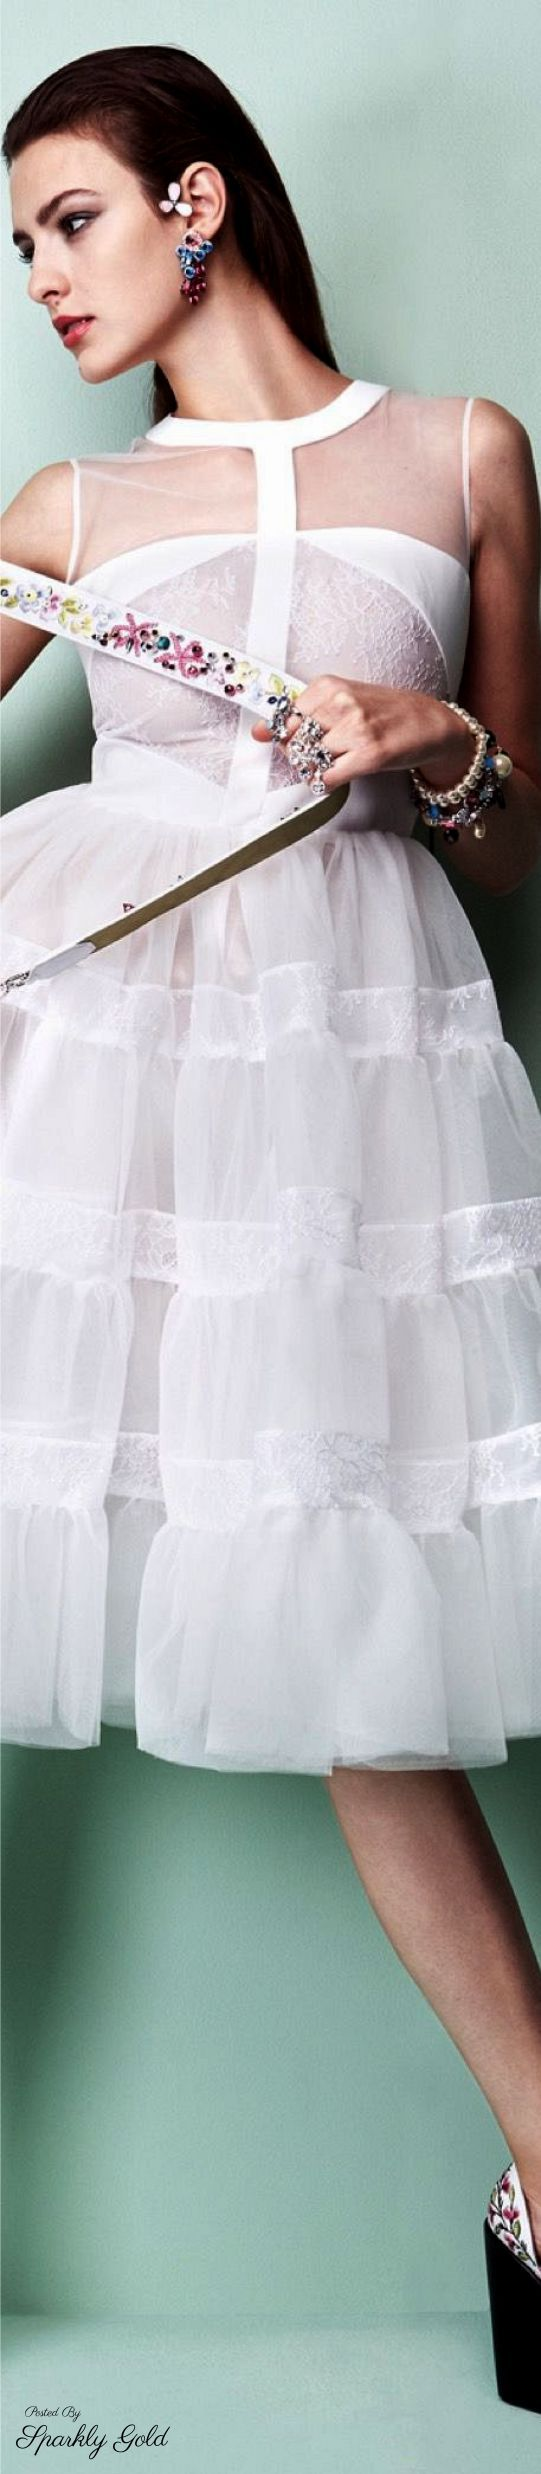 Georges Hobeika S-17 RTW: white dress inspired in a peticoat.